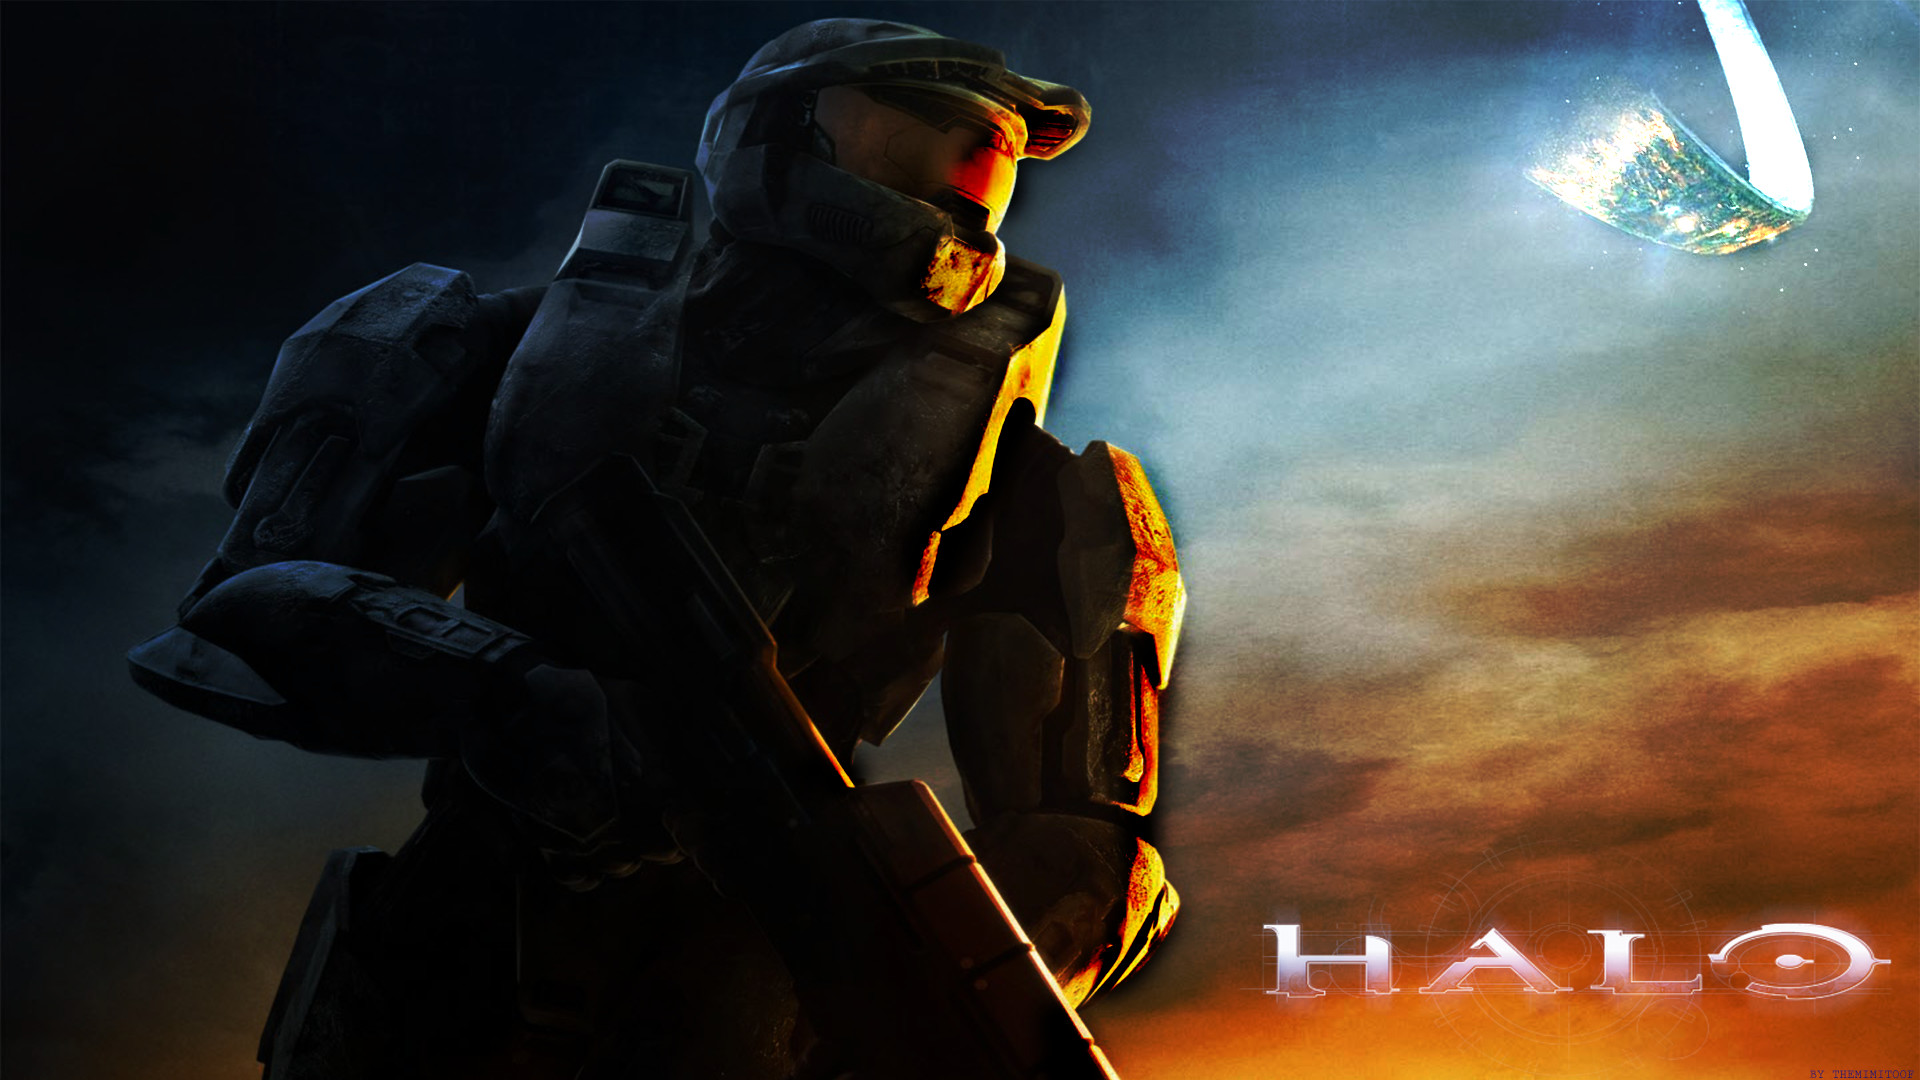 how to get halo for free